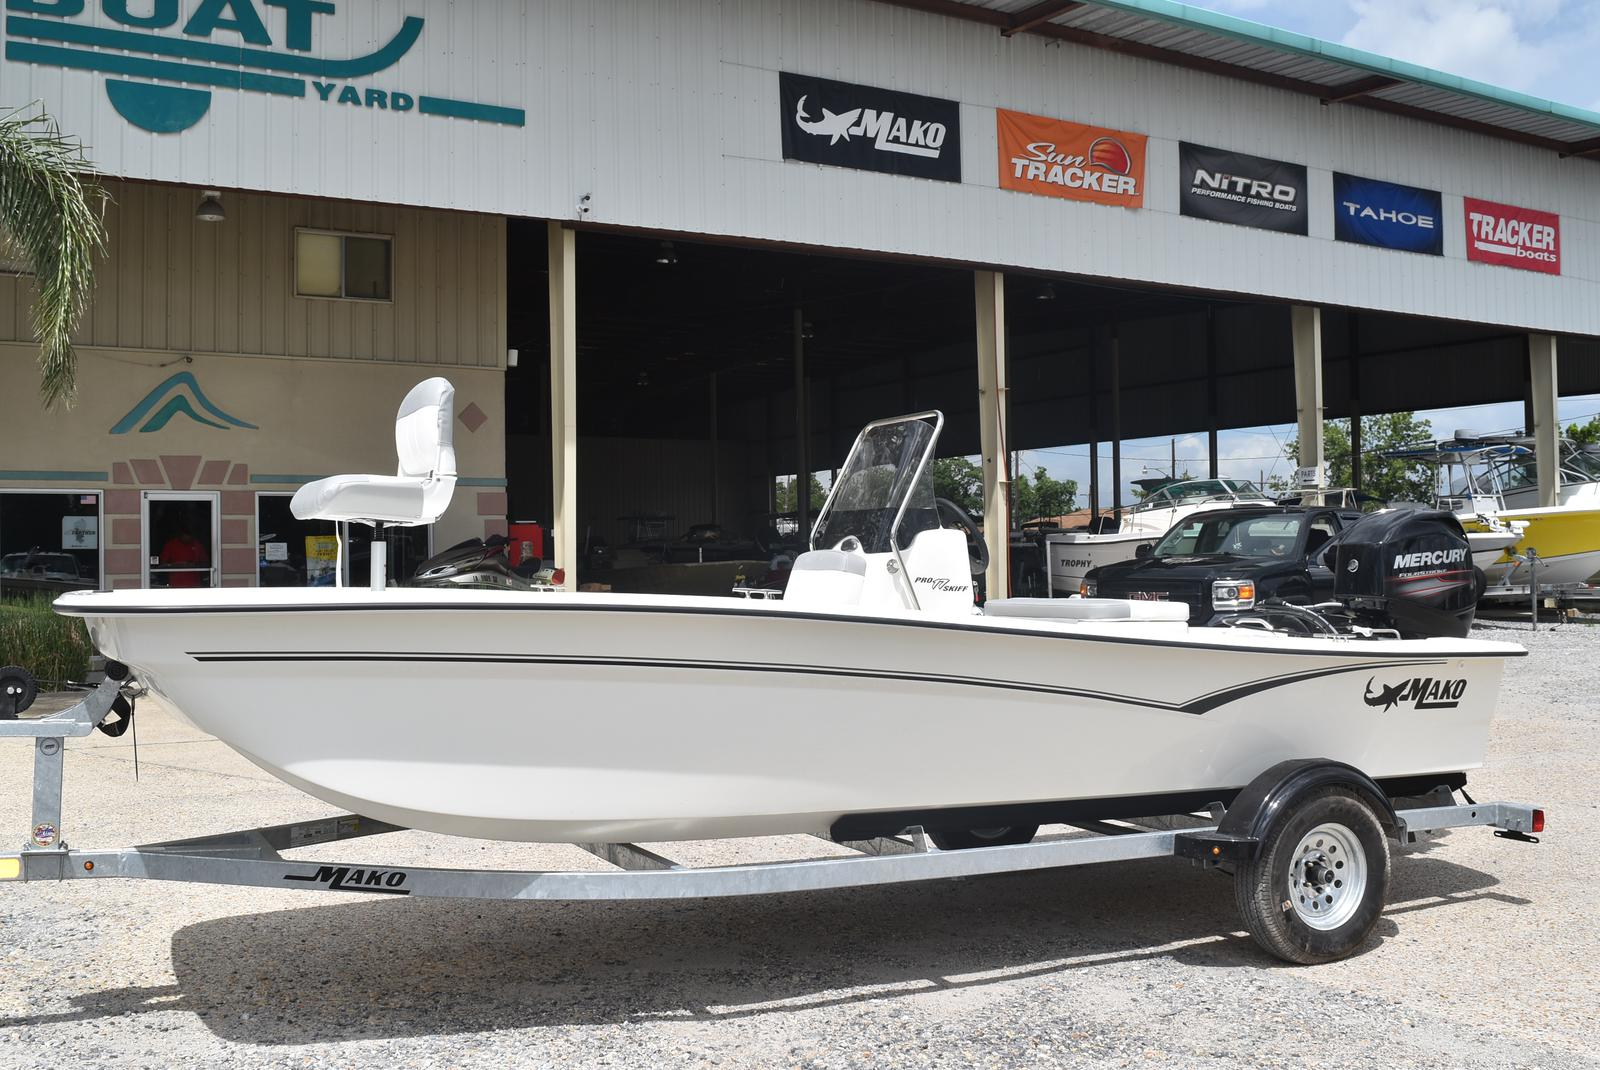 2020 Mako boat for sale, model of the boat is Pro Skiff 17, 75 ELPT & Image # 84 of 702